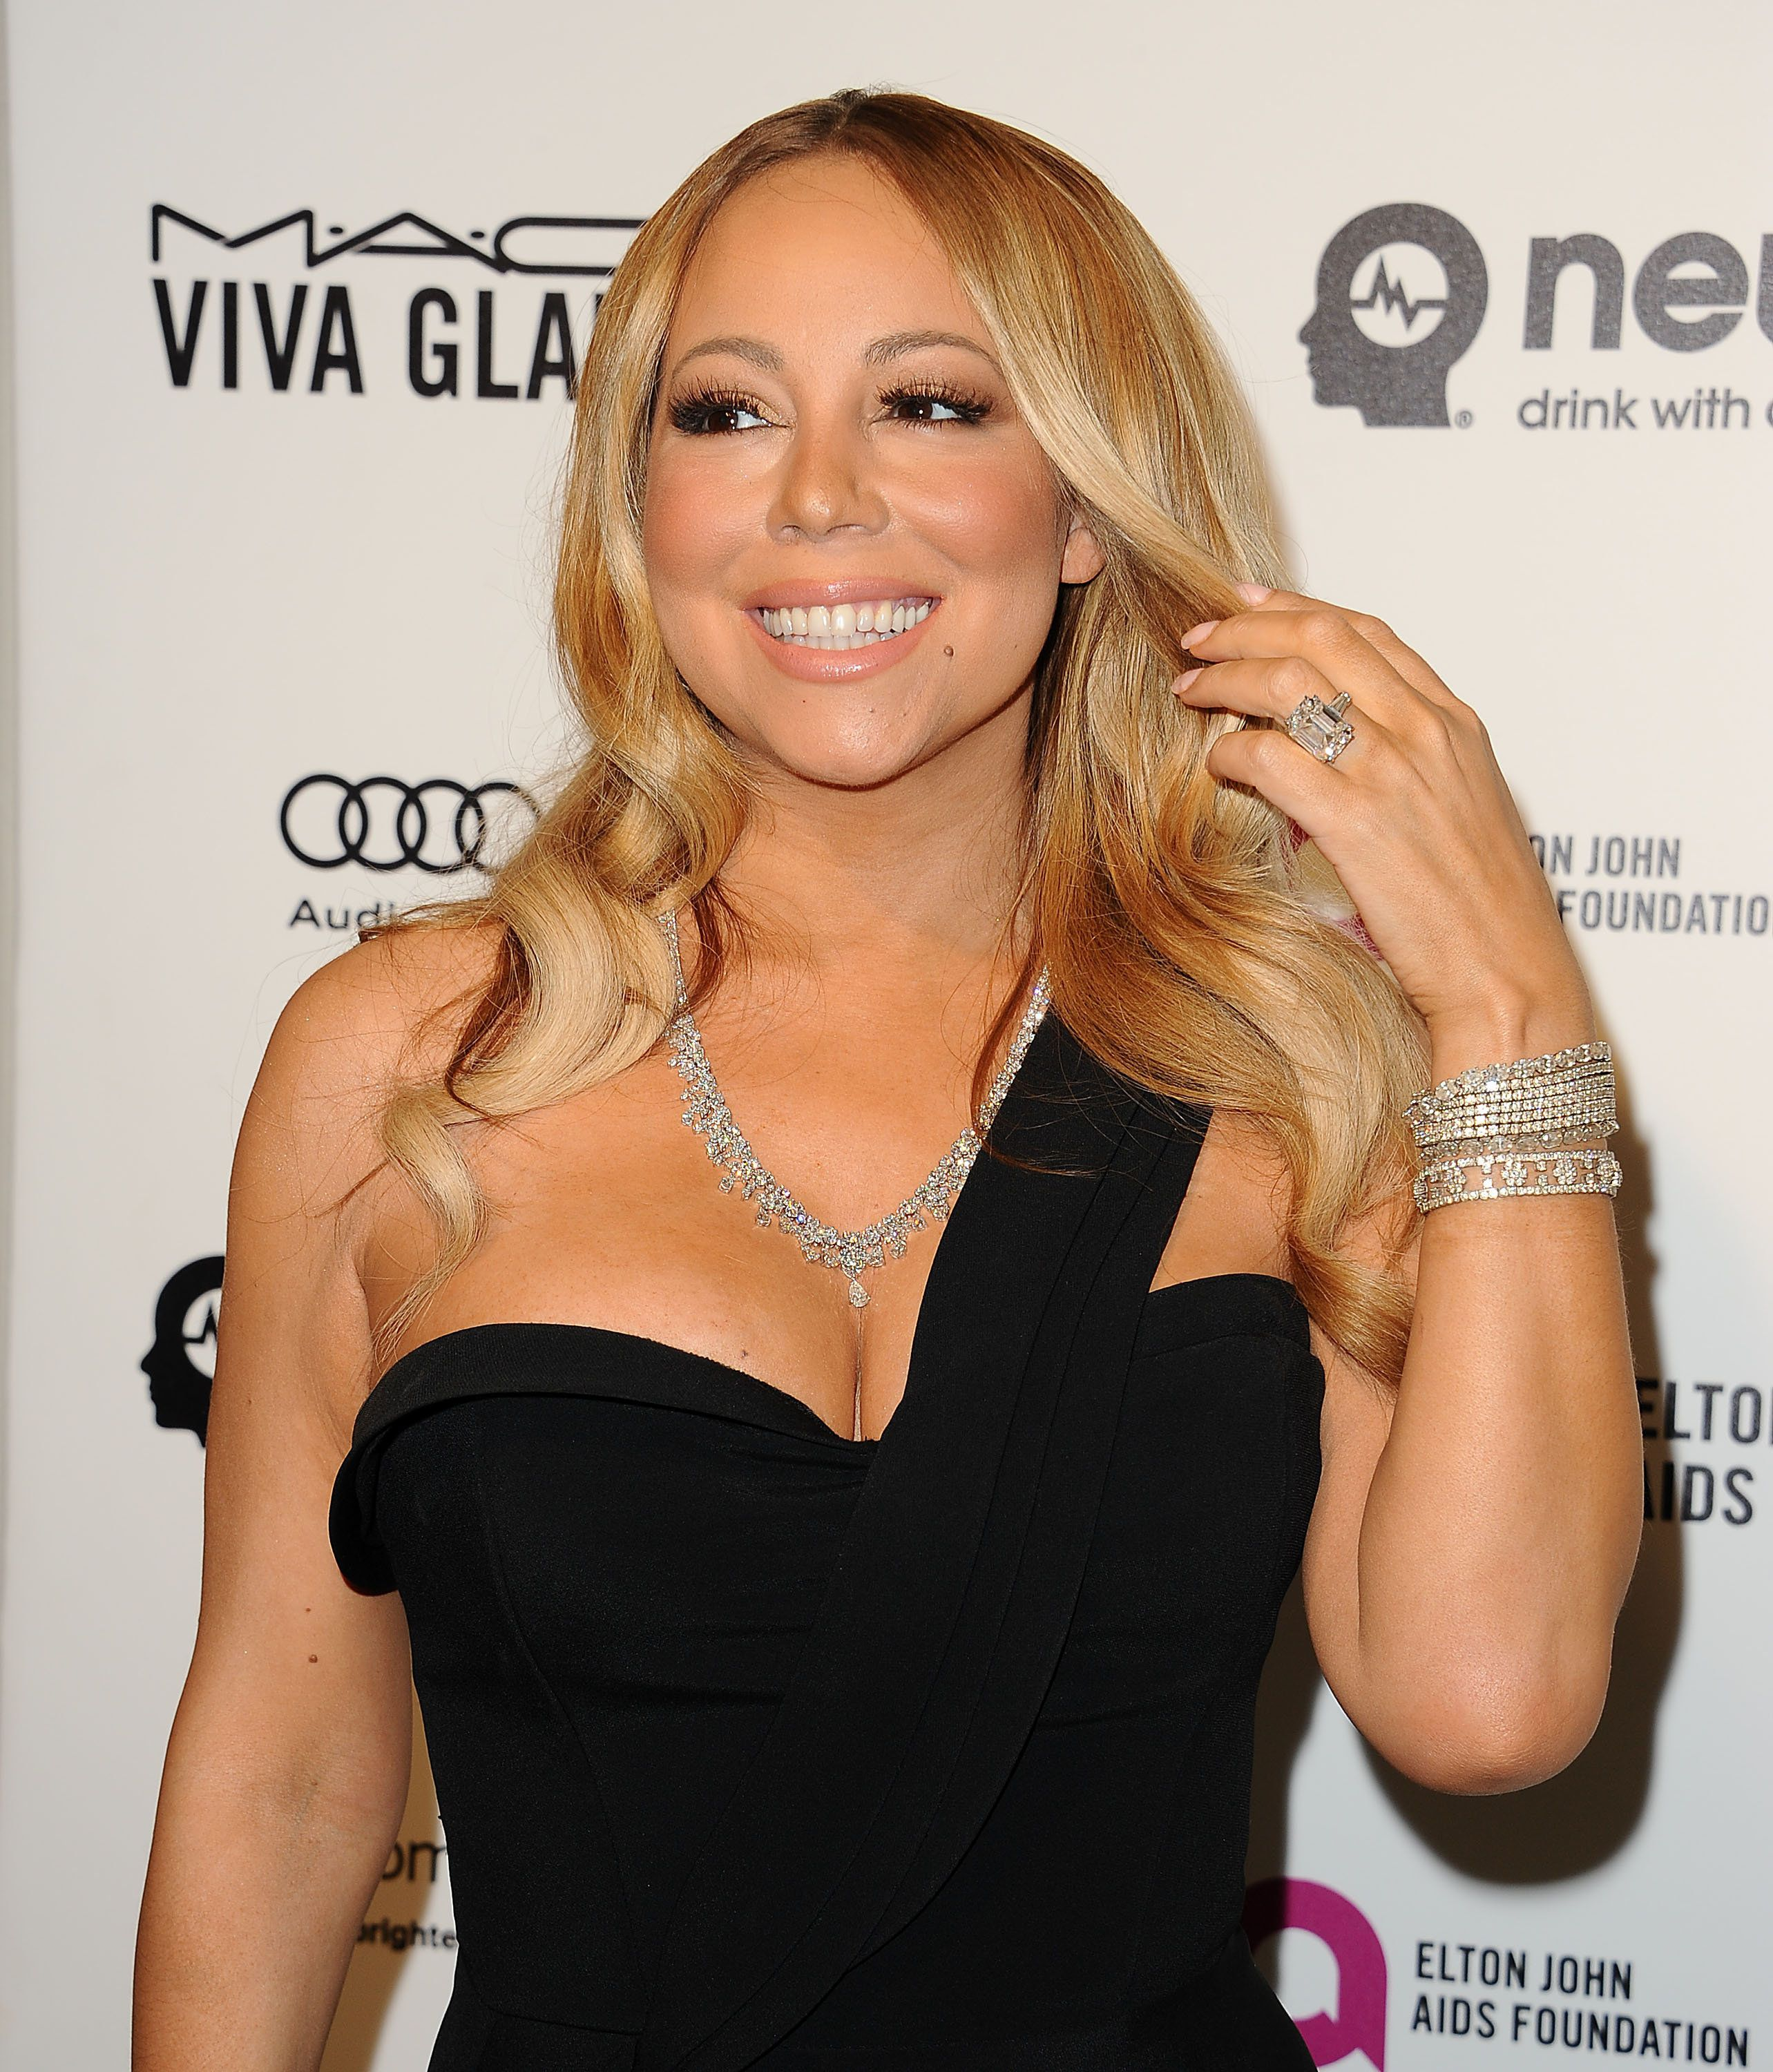 WEST HOLLYWOOD, CA - FEBRUARY 28:  Mariah Carey attends the 24th annual Elton John AIDS Foundation's Oscar viewing party on February 28, 2016 in West Hollywood, California.  (Photo by Jason LaVeris/Getty Images)